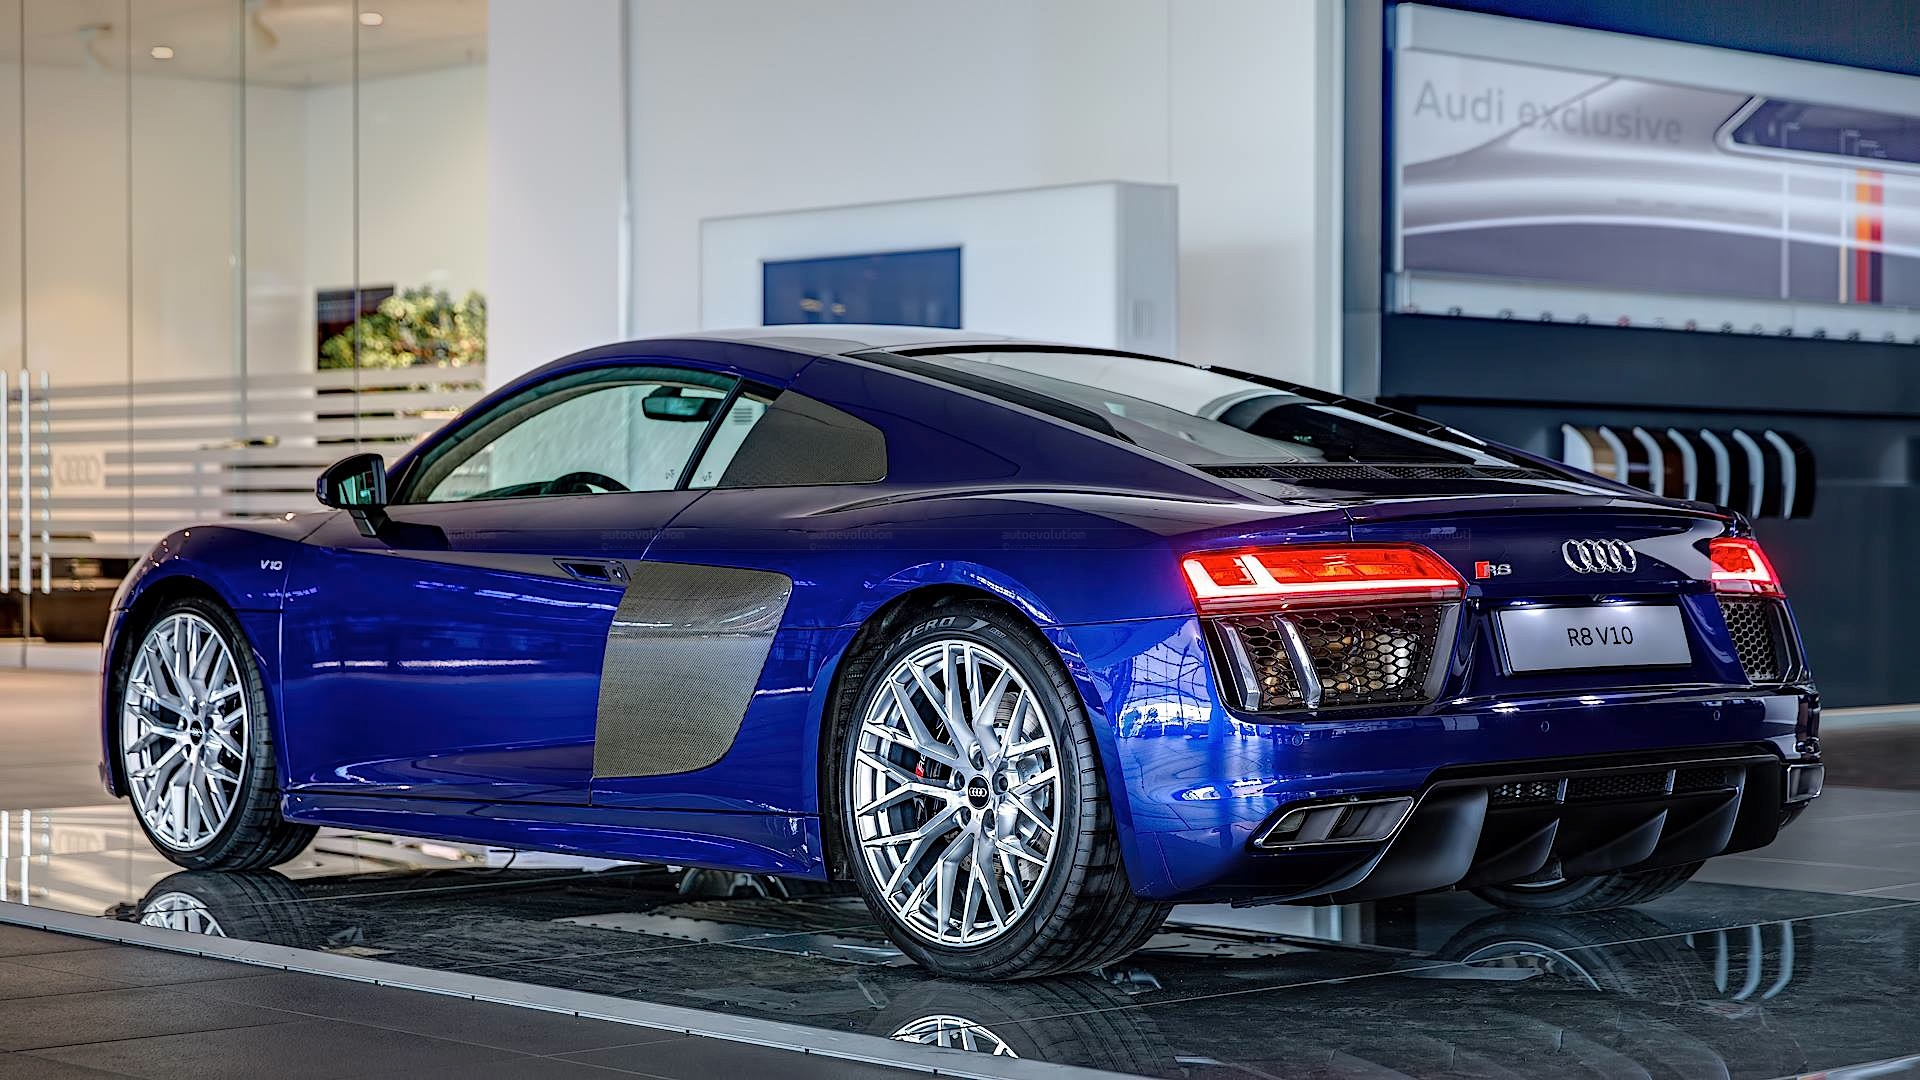 2016 Audi R8 V10 Gets Santorini Blue Paint And Havana